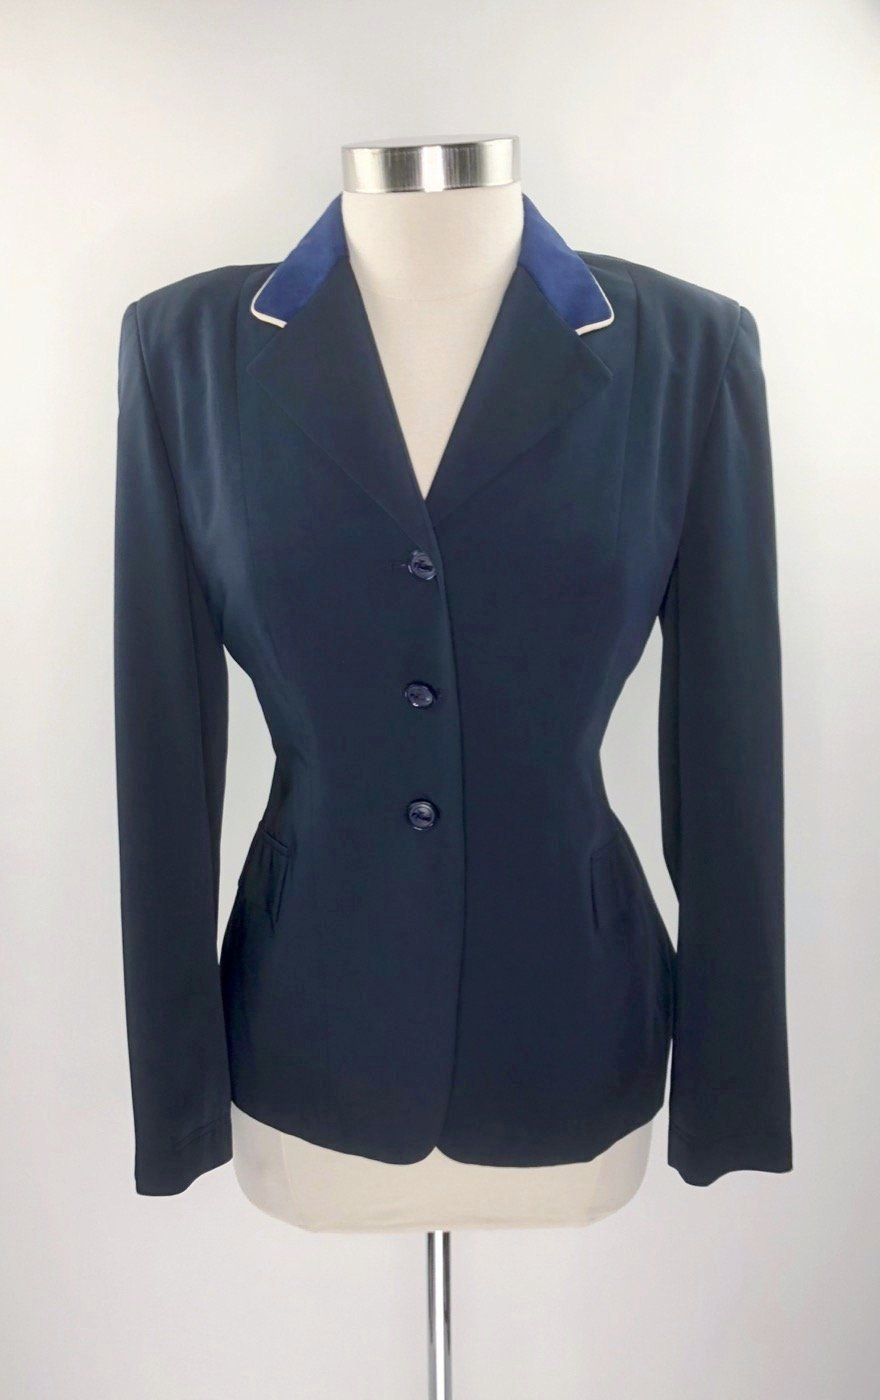 Grand Prix TechLite Hunt Coat in Navy w/Sapphire Collar -  Front View